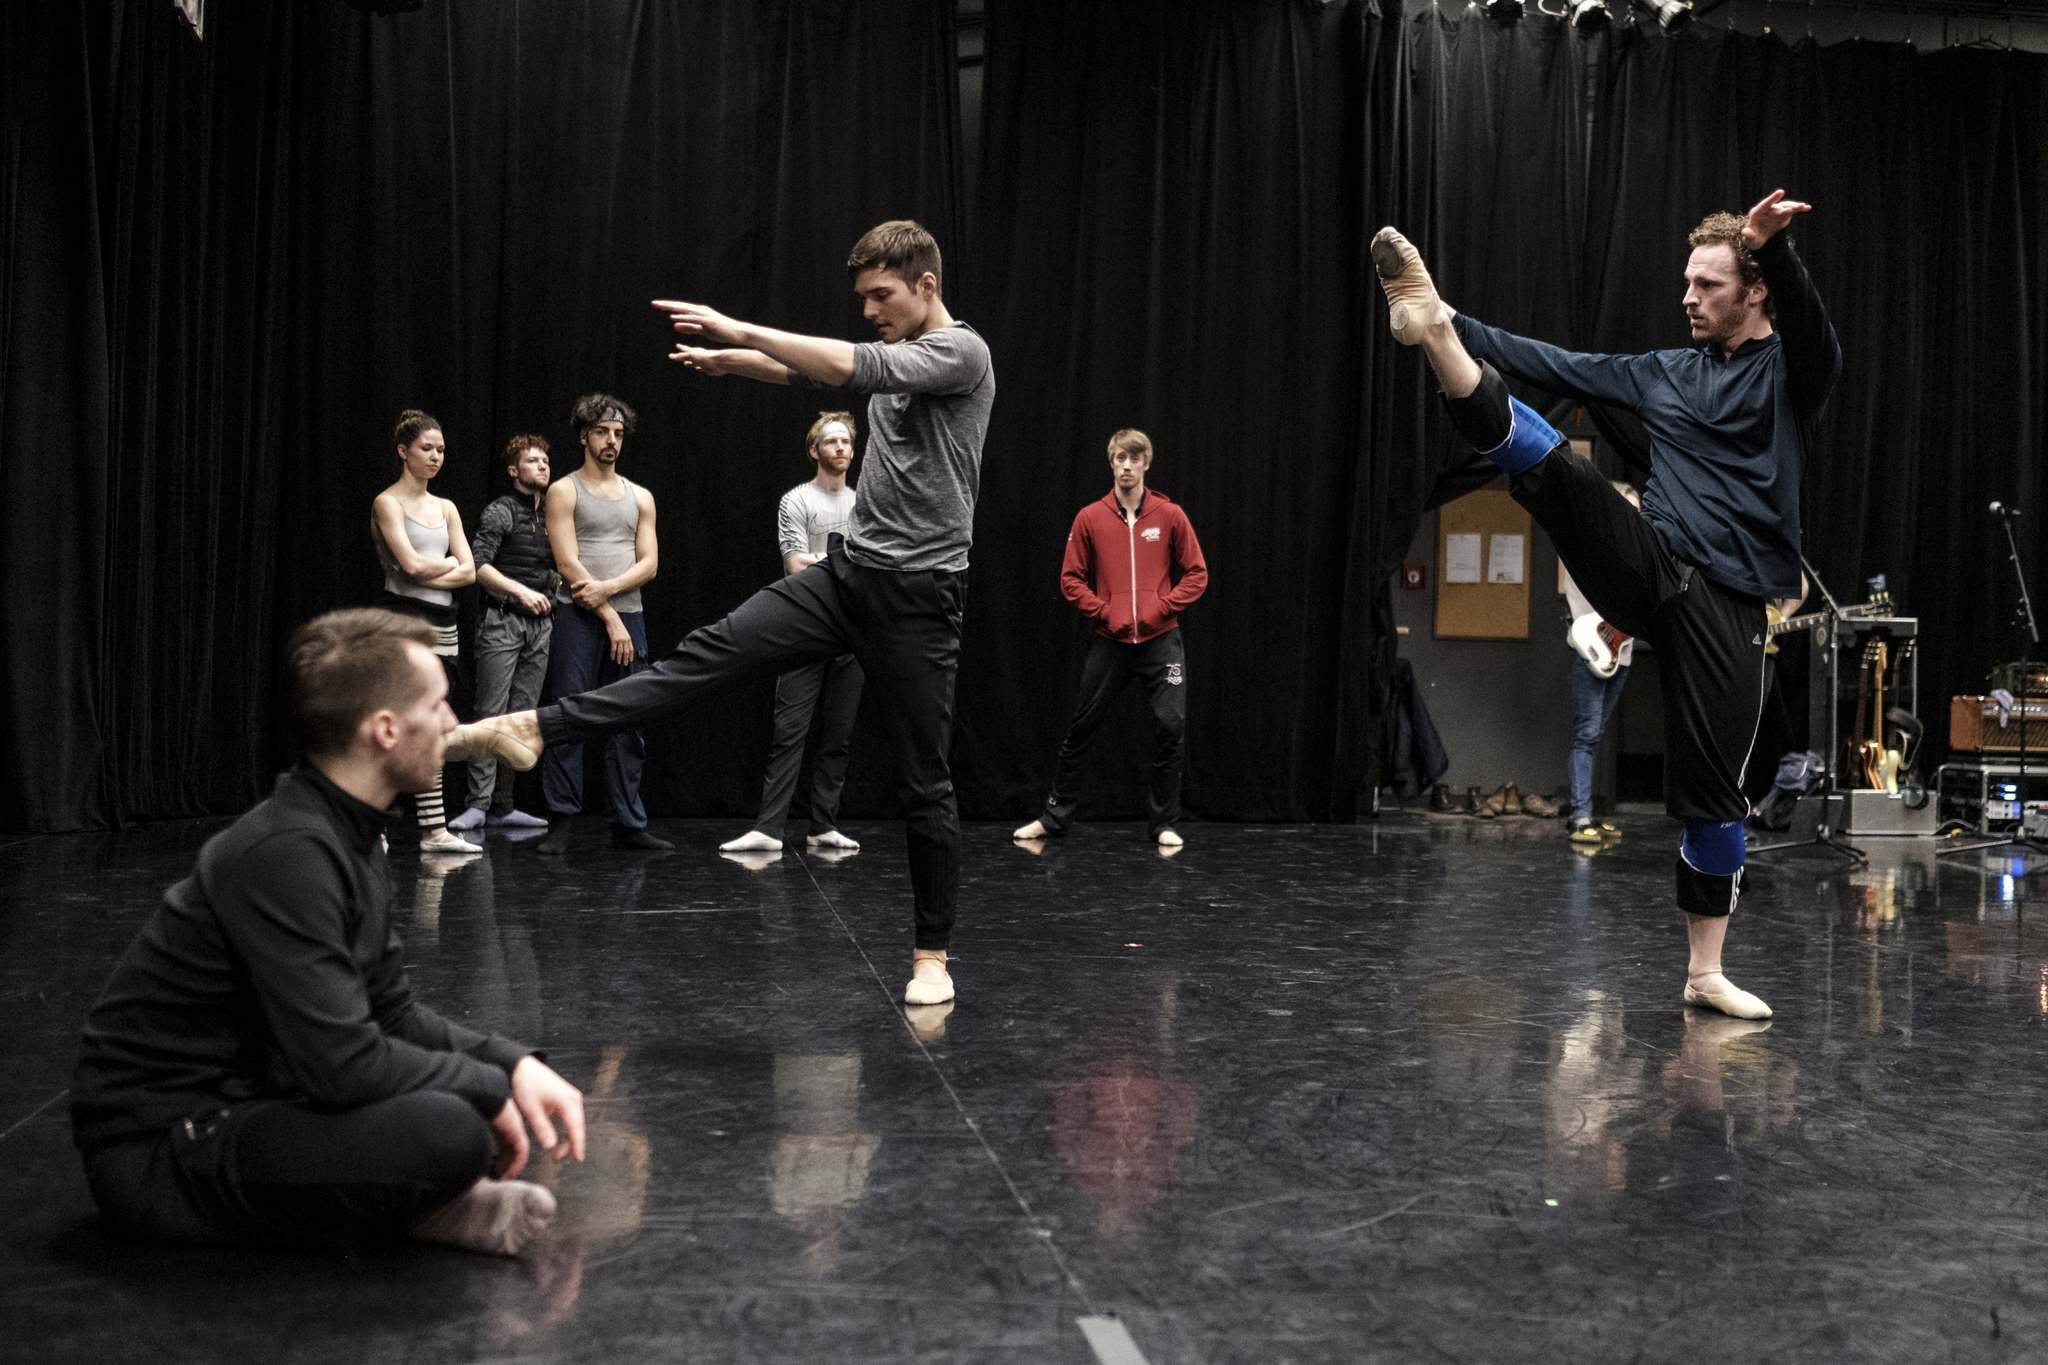 Choreographer Philippe Larouche (left) watches as Ryan Vetter (centre) and Liam Caines practise at an open rehearsal for Ballet And The Band. (Daniel Crump / Winnipeg Free Press)